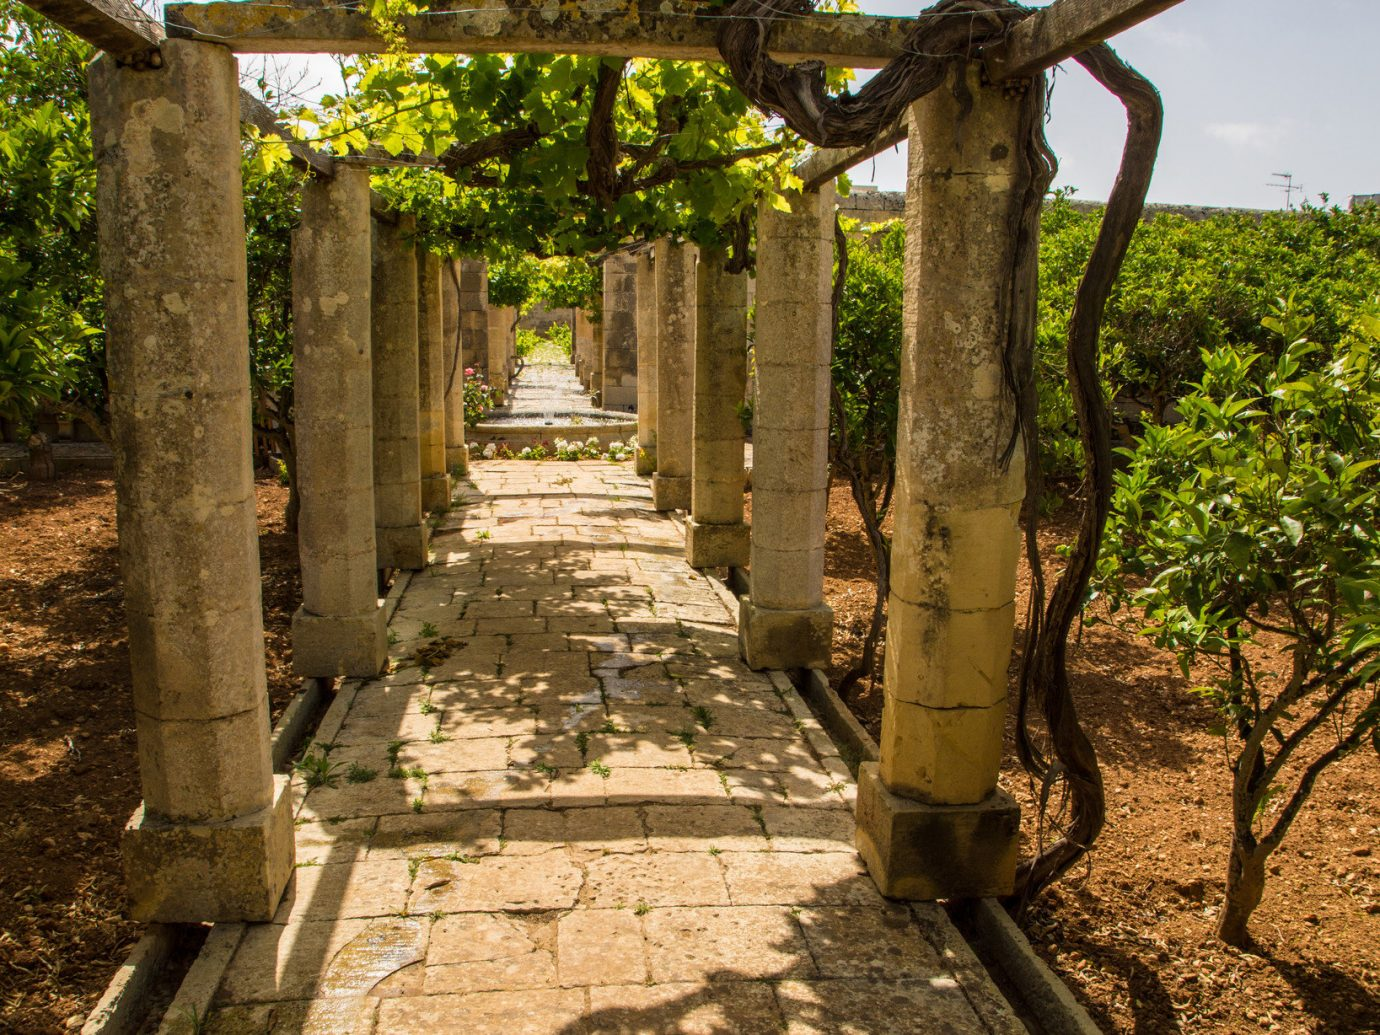 column columns Trip Ideas tree outdoor ground Ruins plant ancient history rural area Garden temple shrine flower wooded